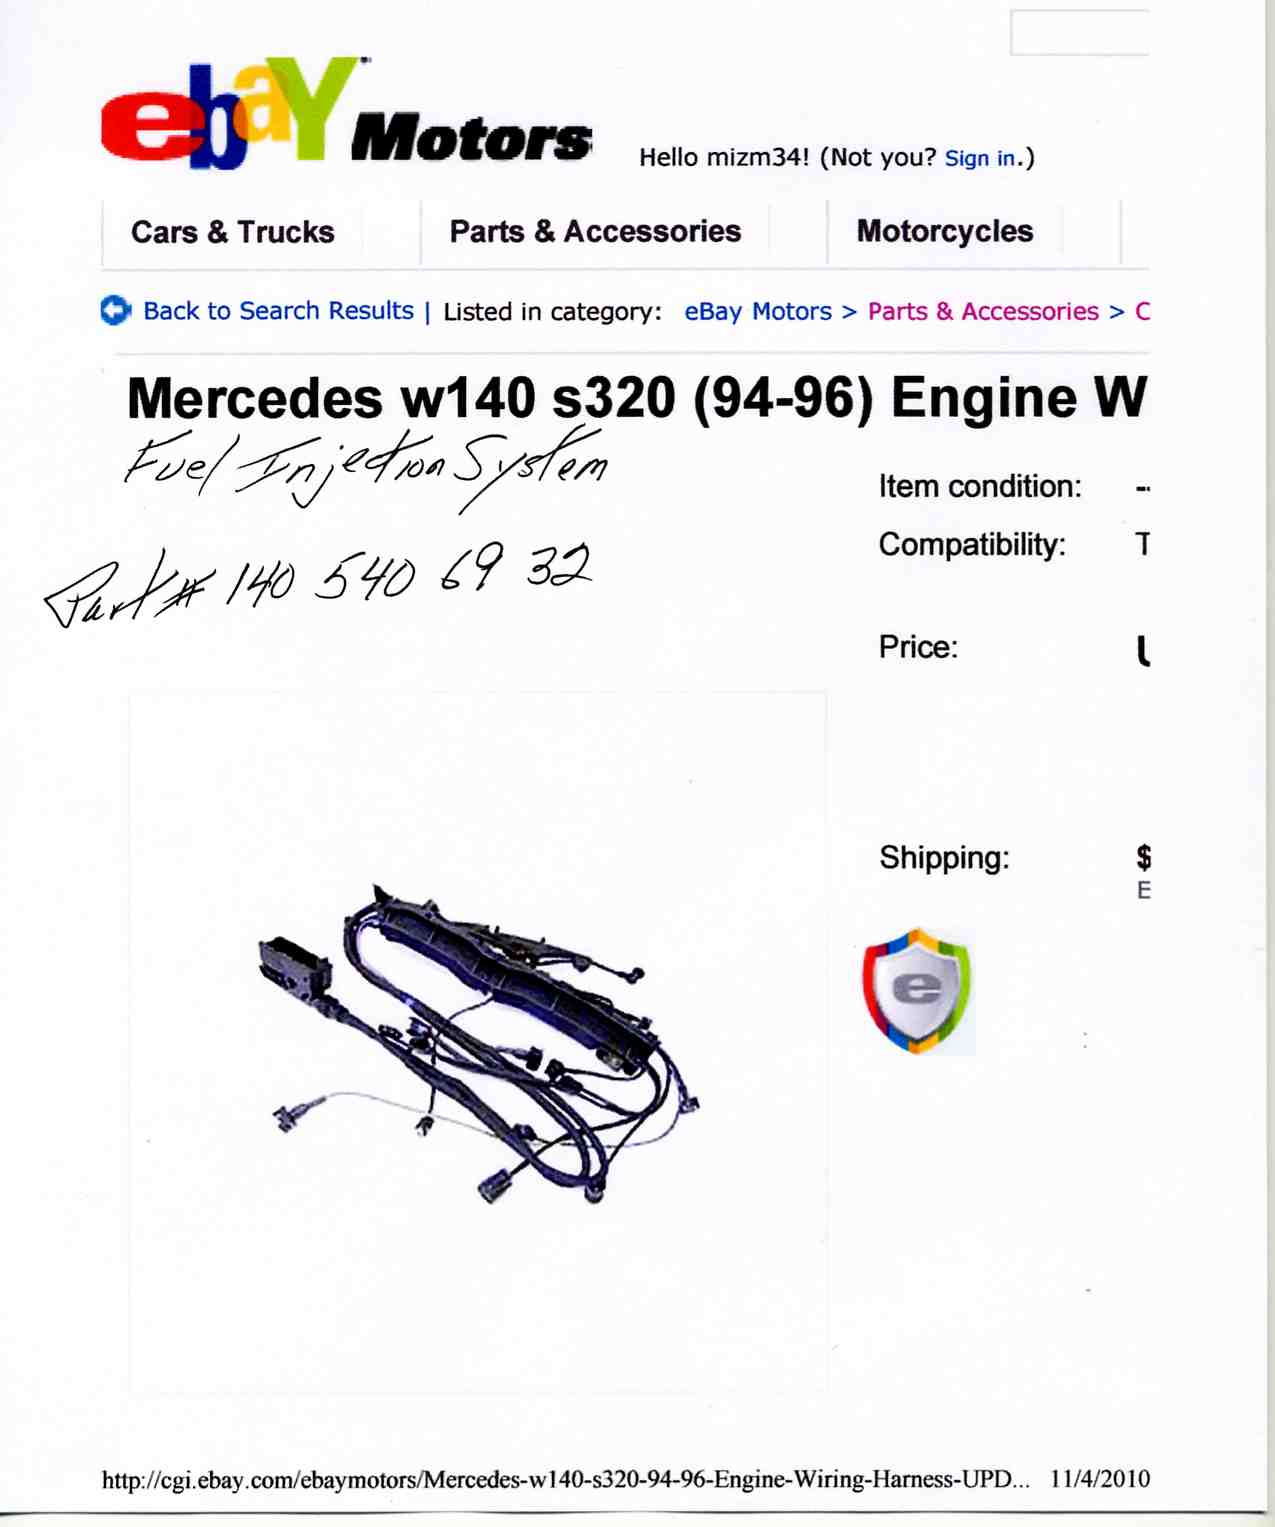 hight resolution of 1995 s320 engine wire harness img008 jpg